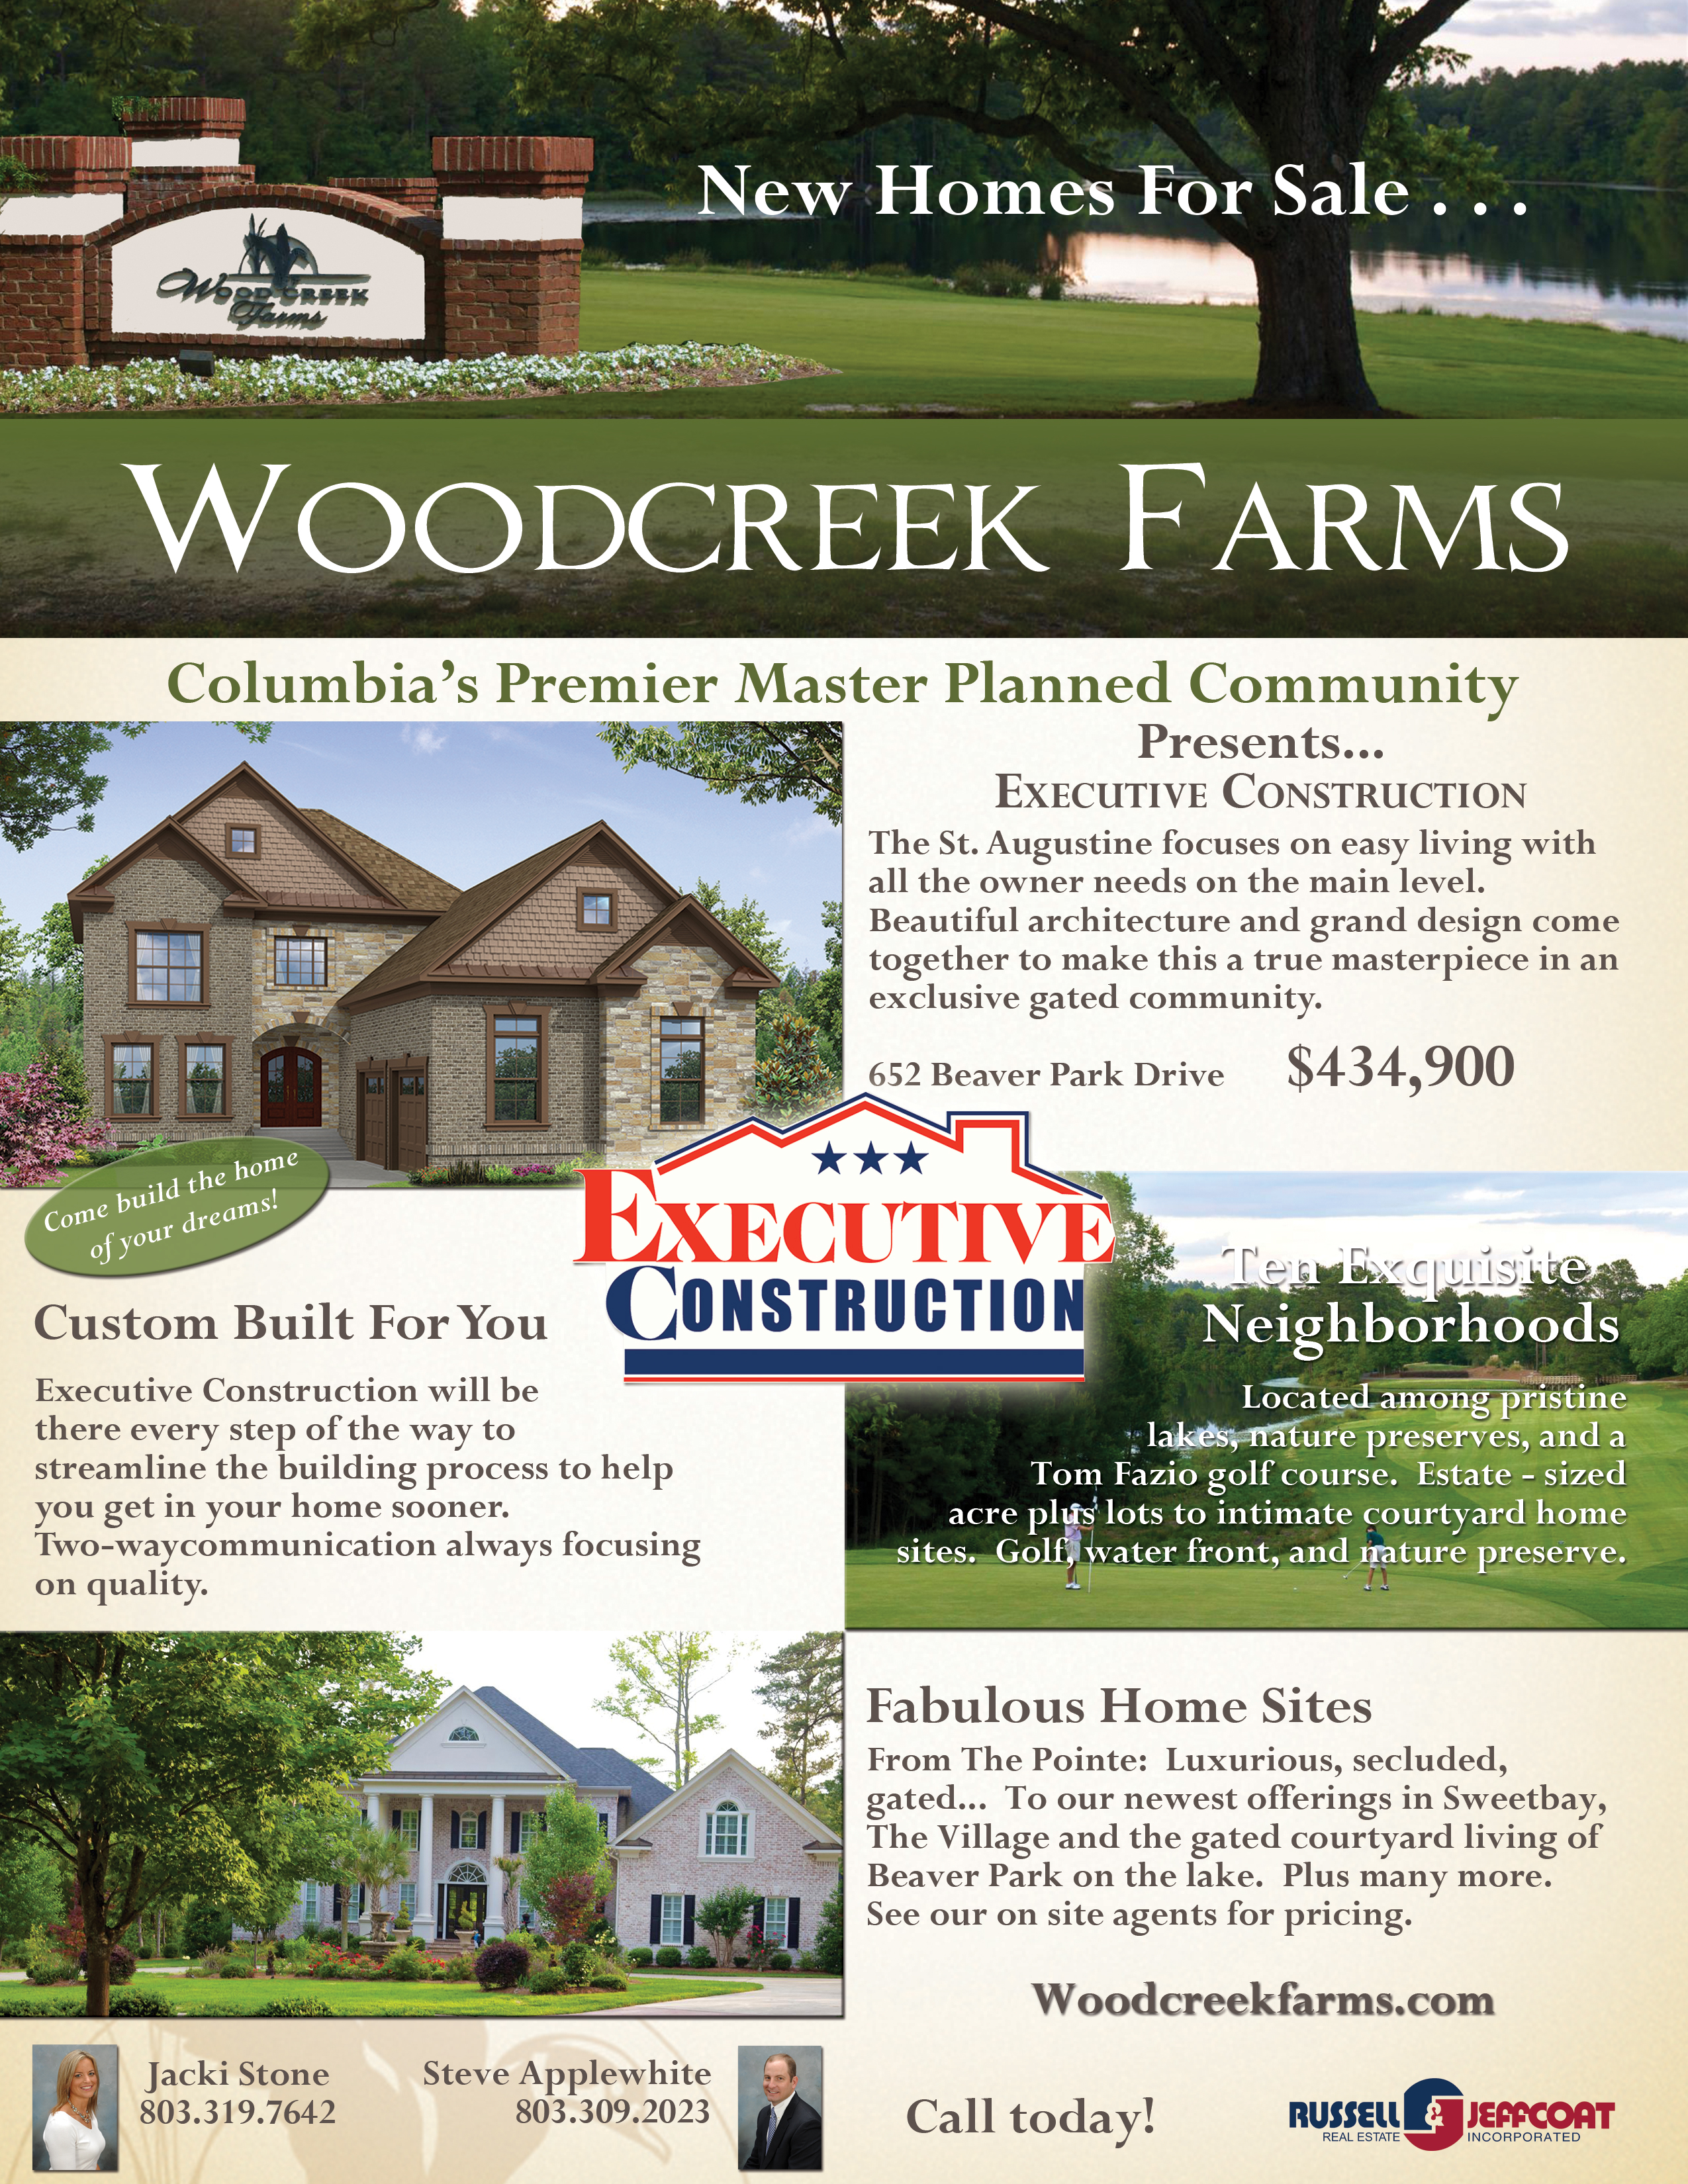 New Home Builder In Golf Course Community In Woodcreek